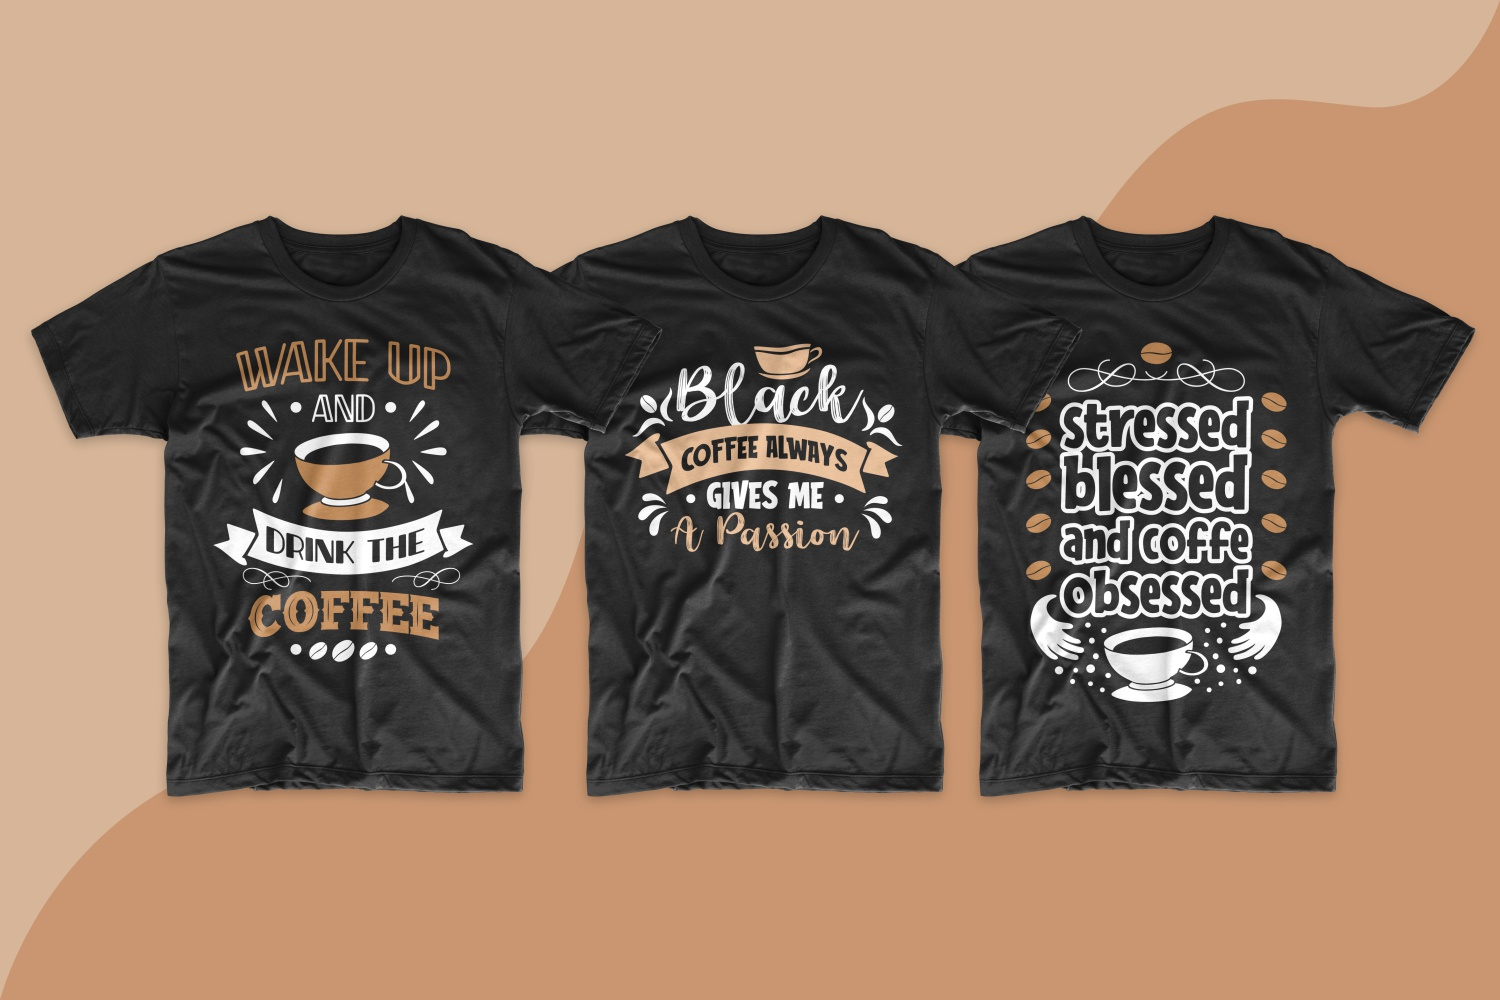 Dark T-shirts with a round neck and short phrases about coffee.